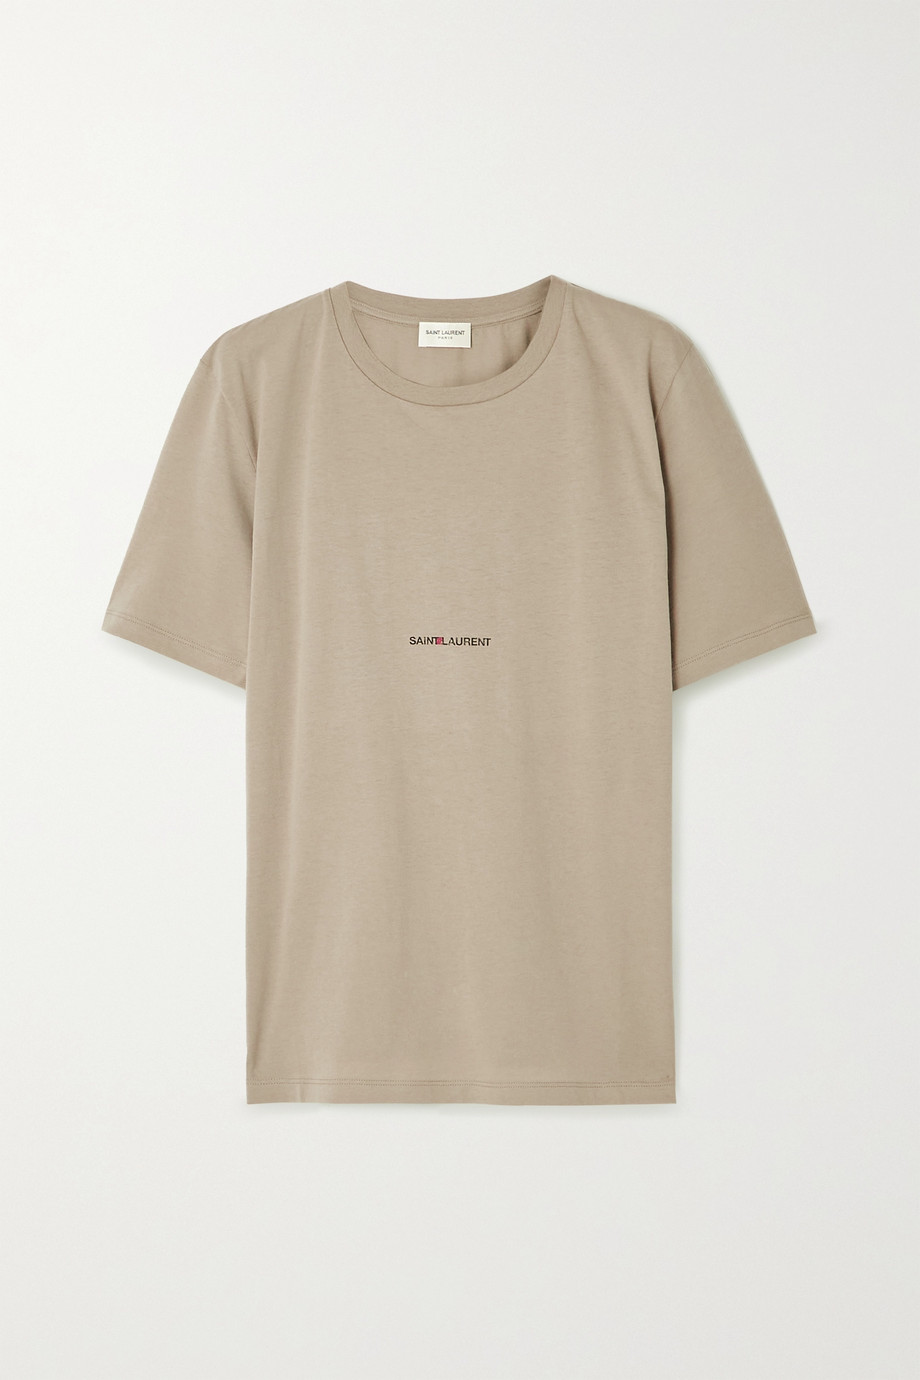 생 로랑 Saint Laurent Printed cotton-jersey T-shirt,Army green